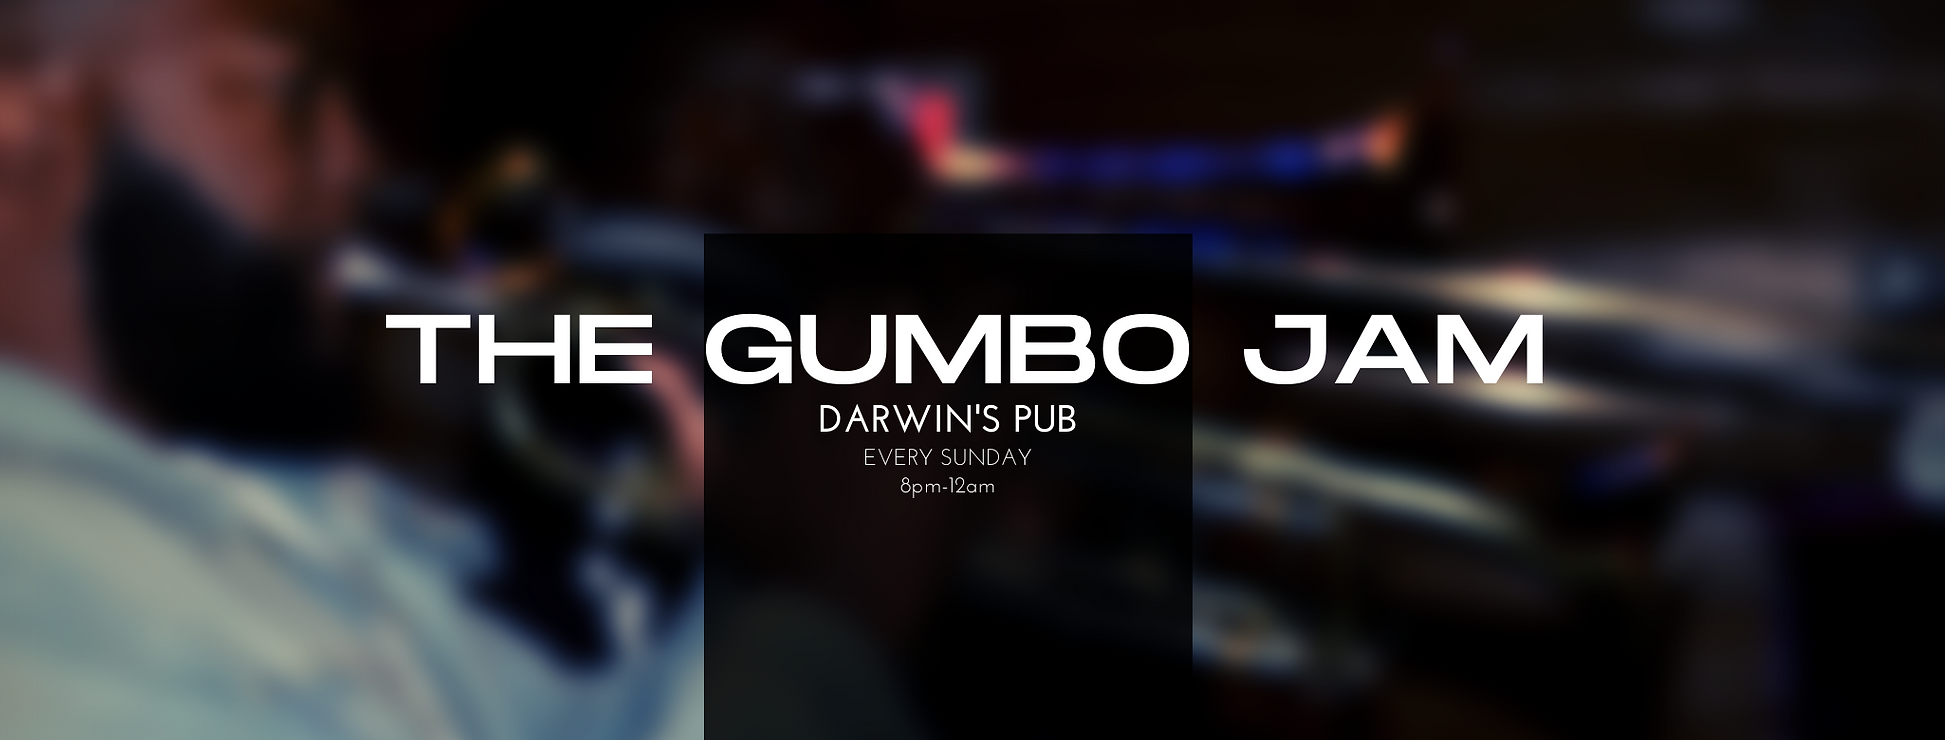 THE gumbo jam(5).png